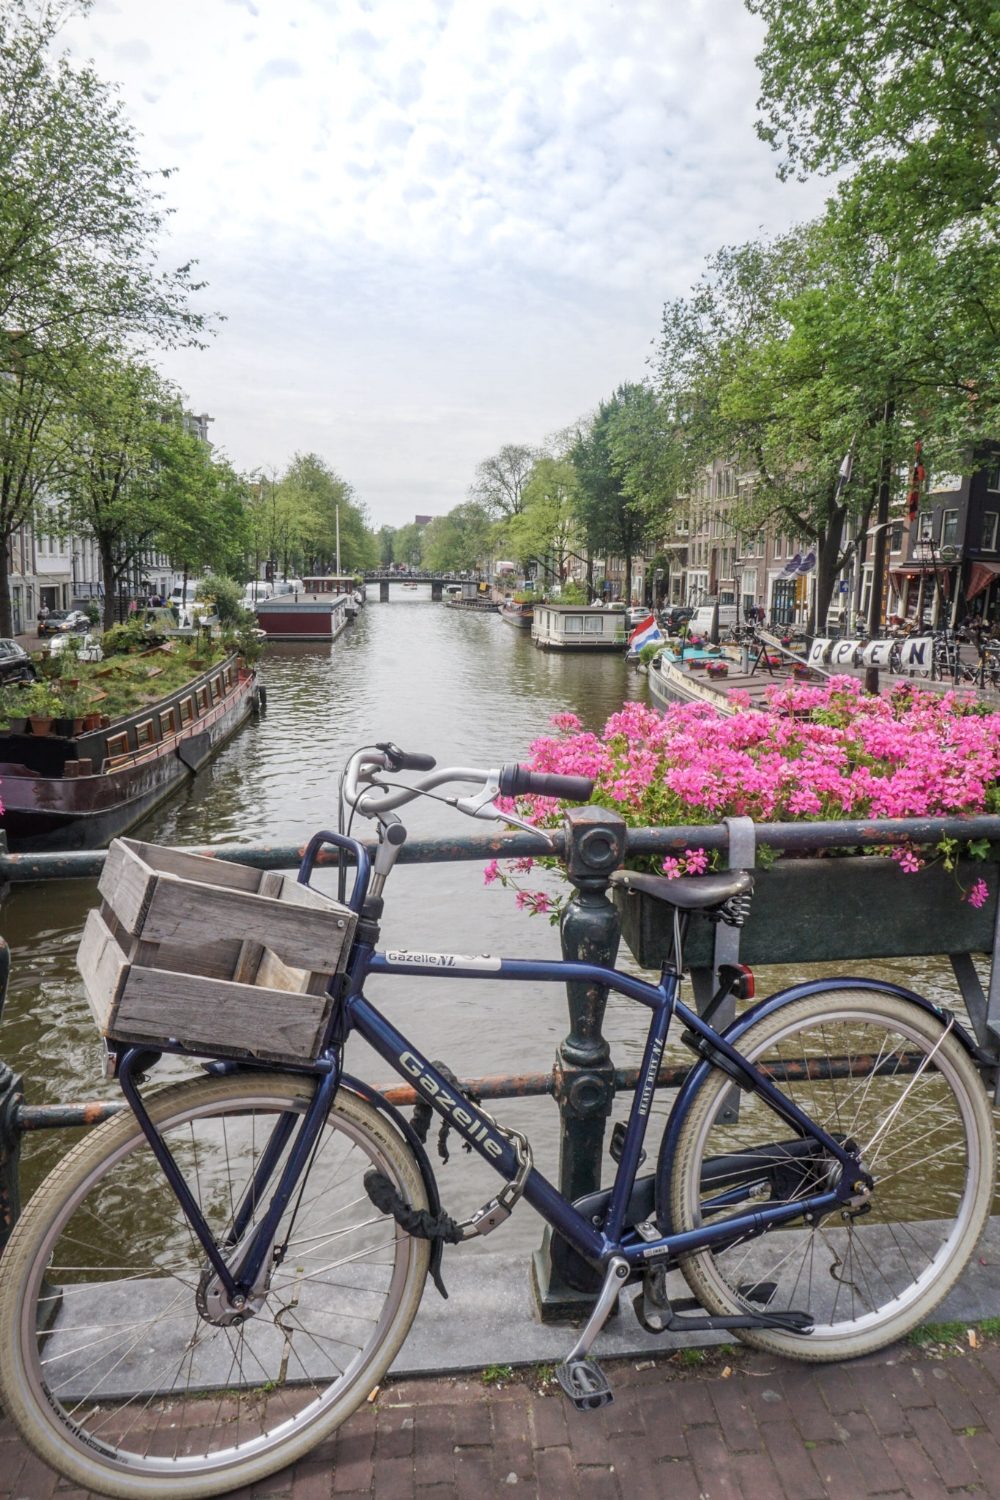 curio.trips.amsterdam.canal.bike.pink.flowers.jpg